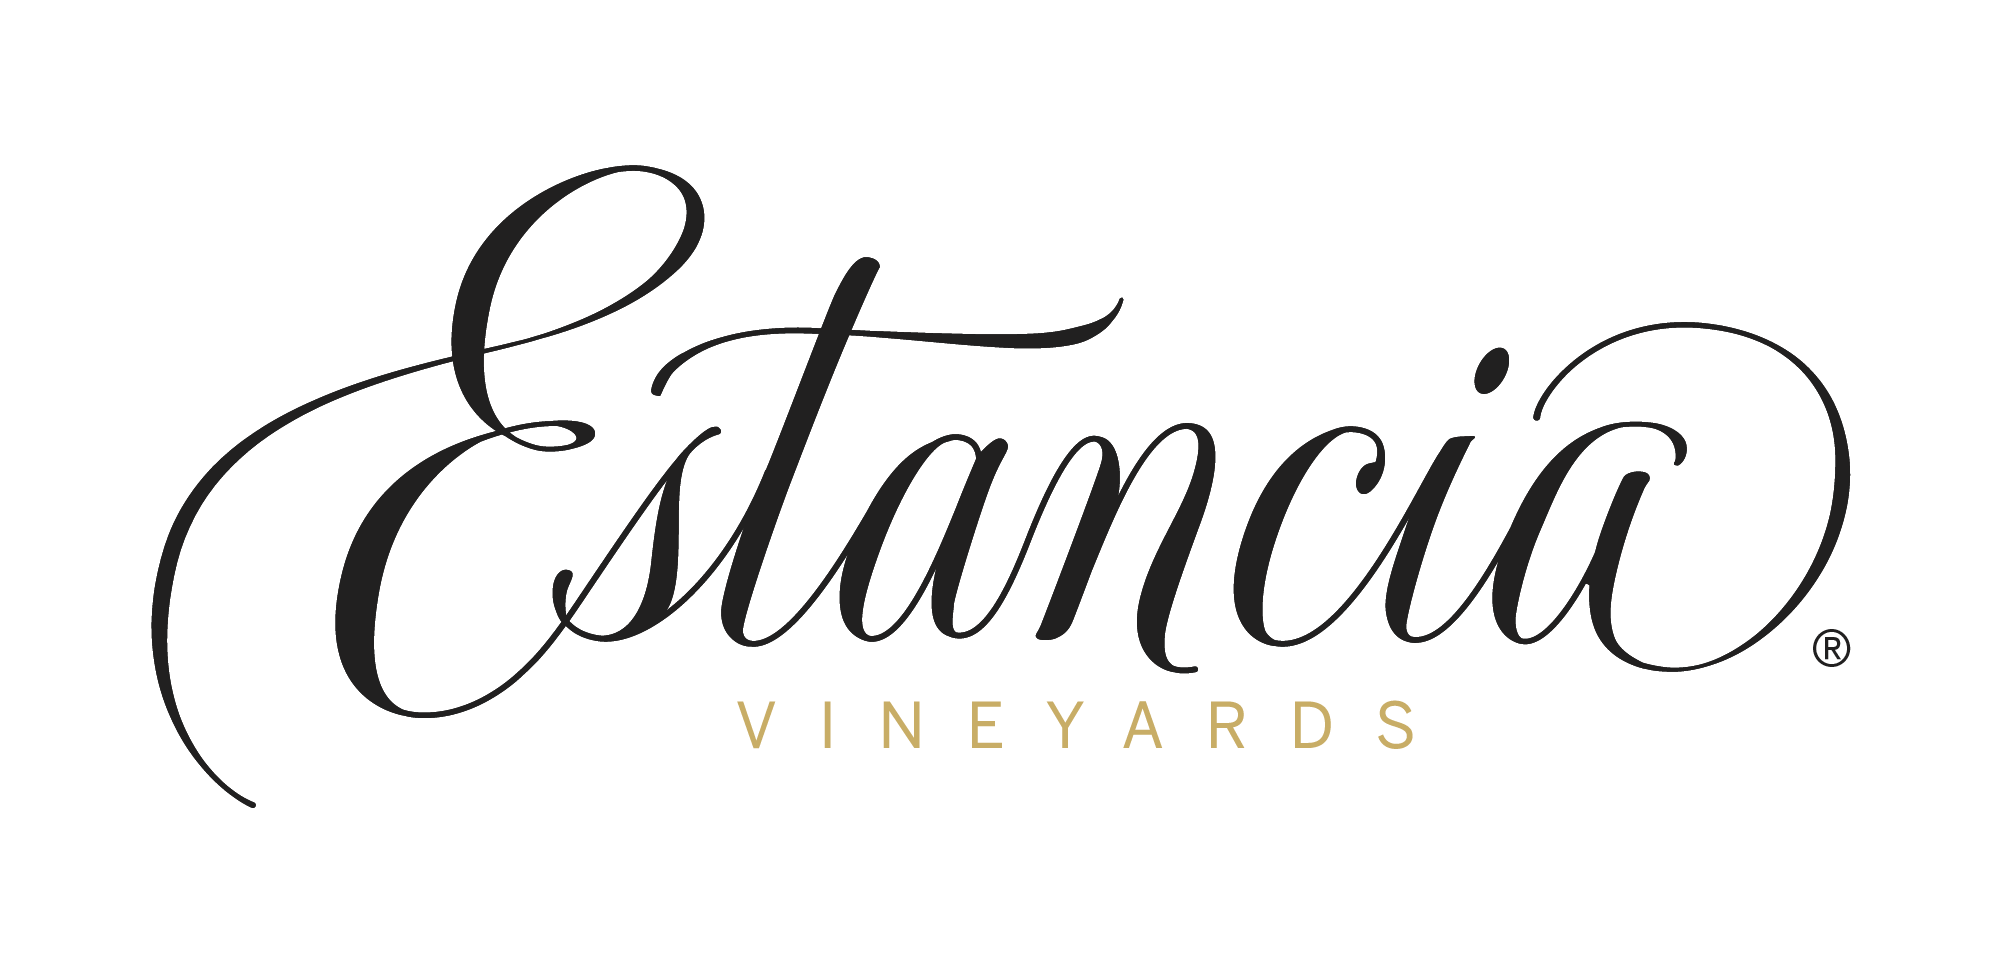 Estancia Vineyards